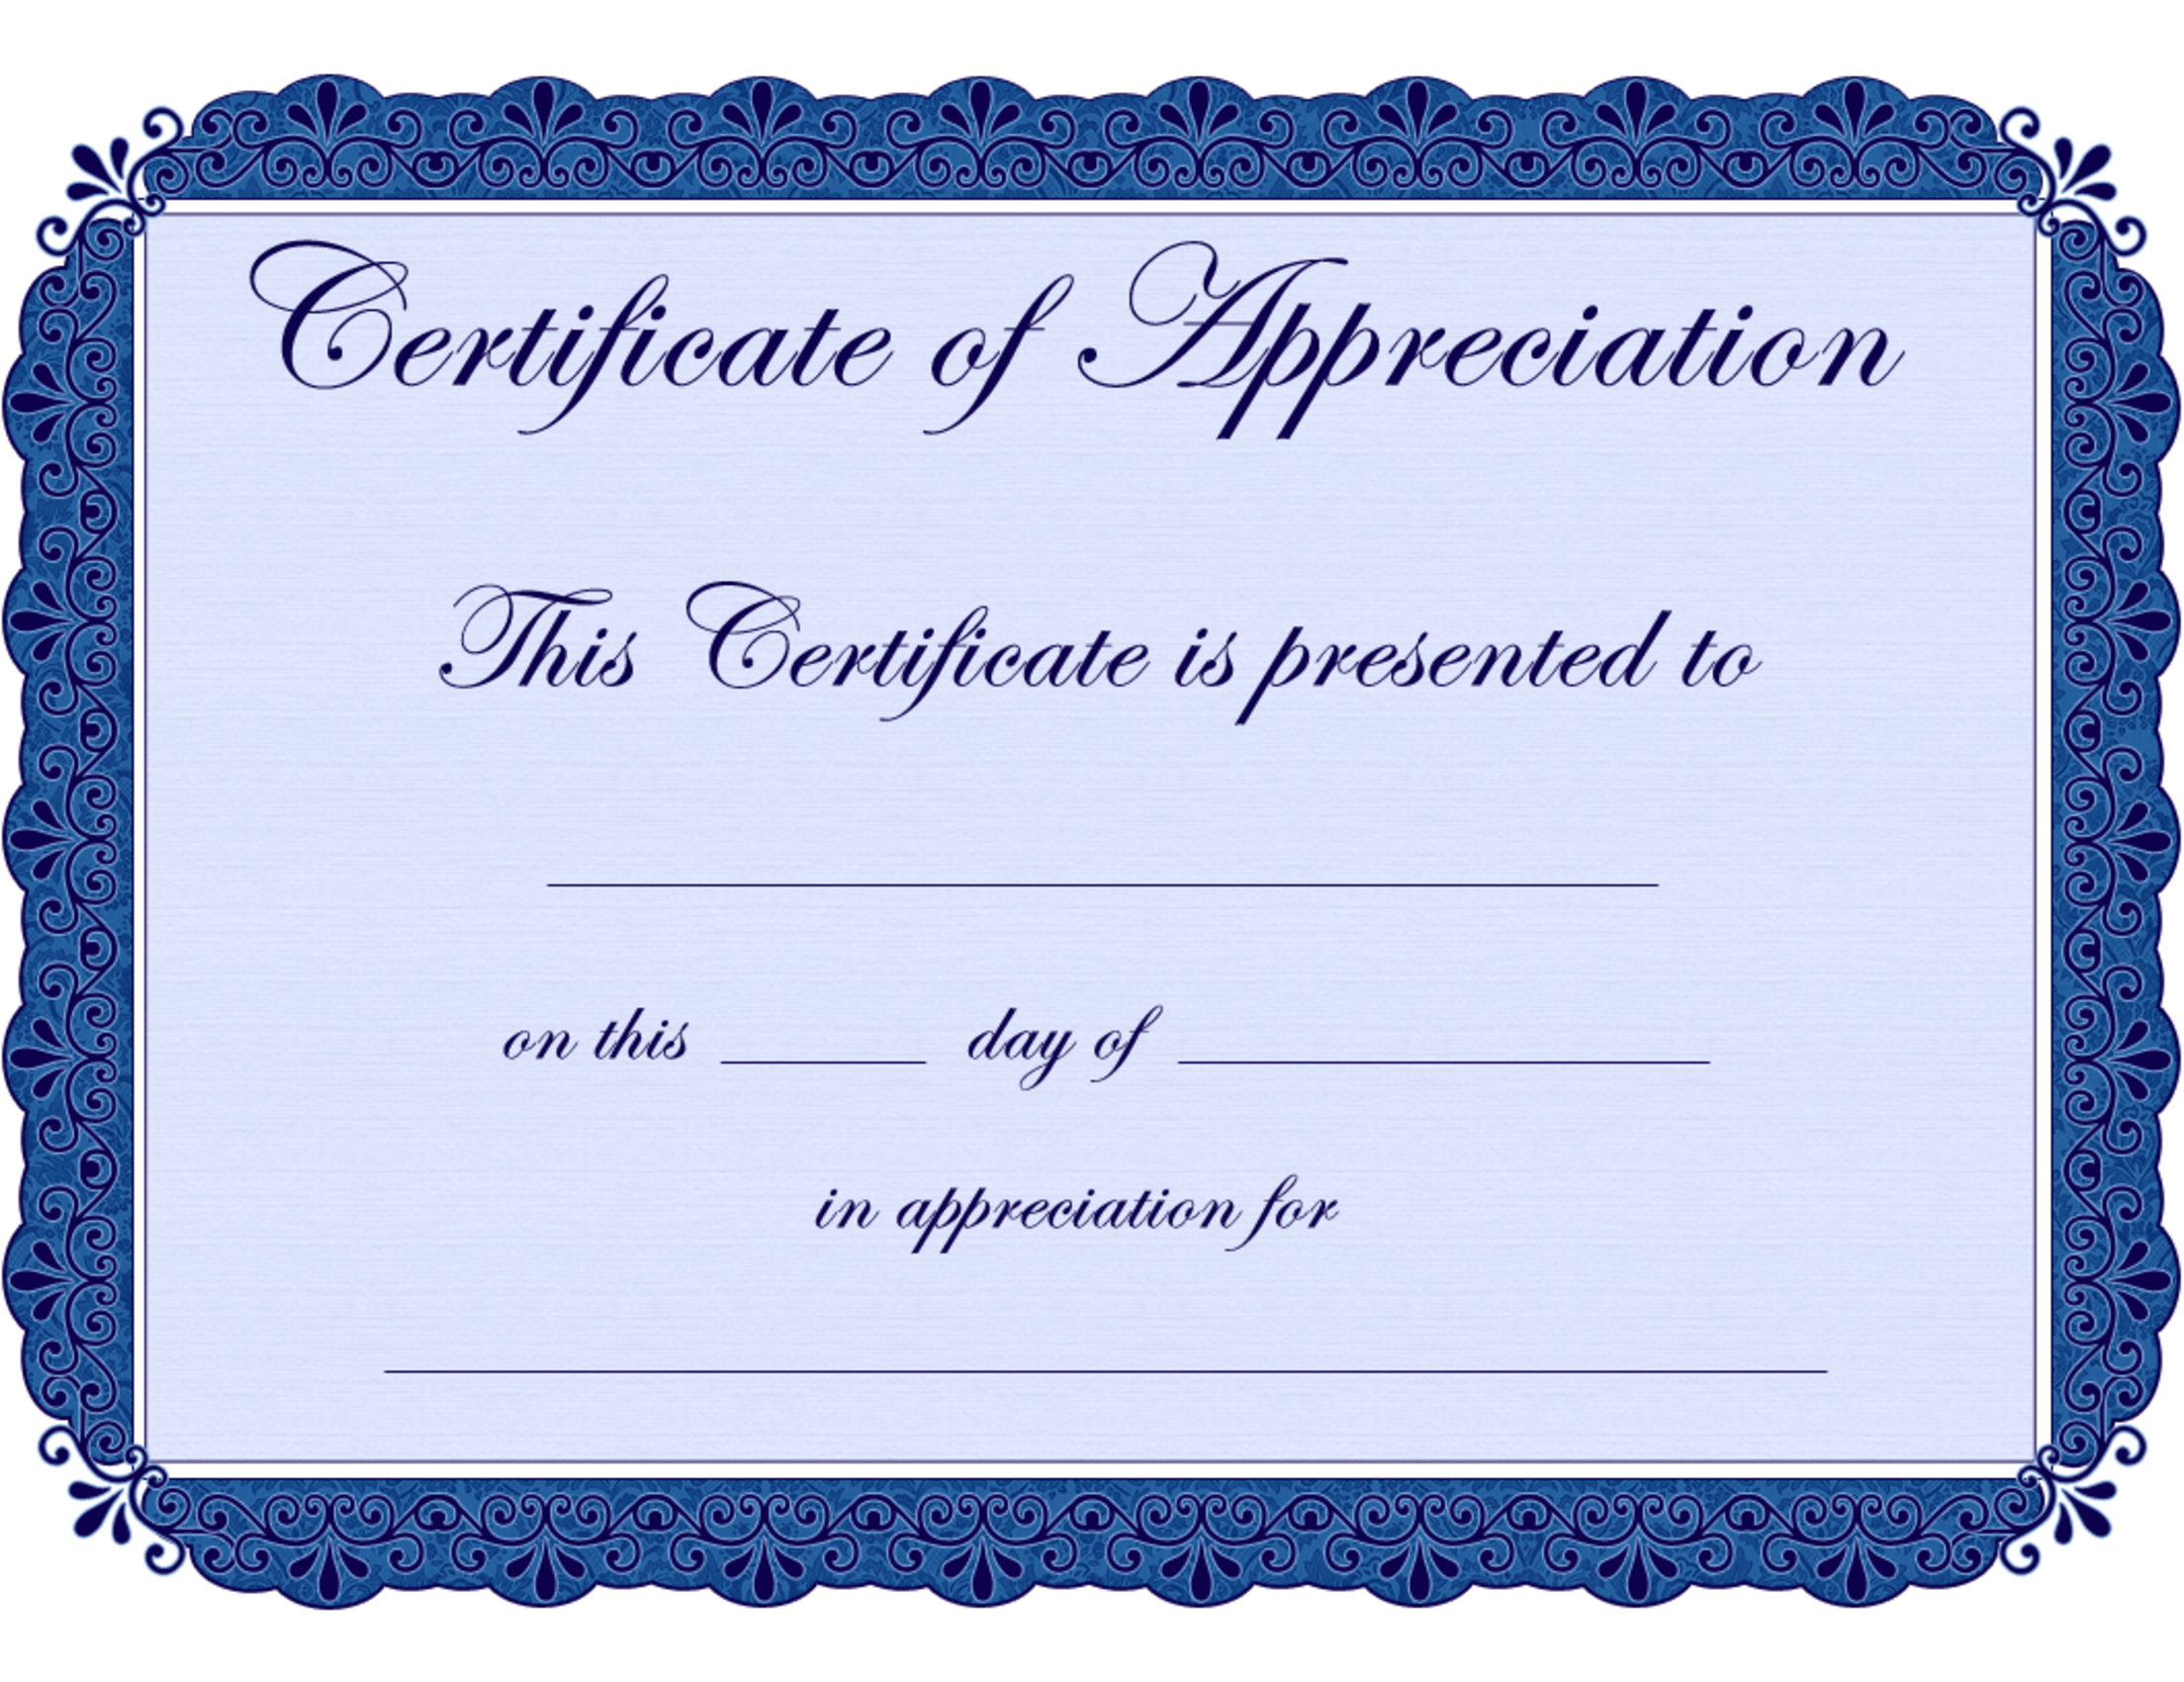 Free Printable Certificates Certificate Of Appreciation Certificate - Free Printable Volunteer Certificates Of Appreciation